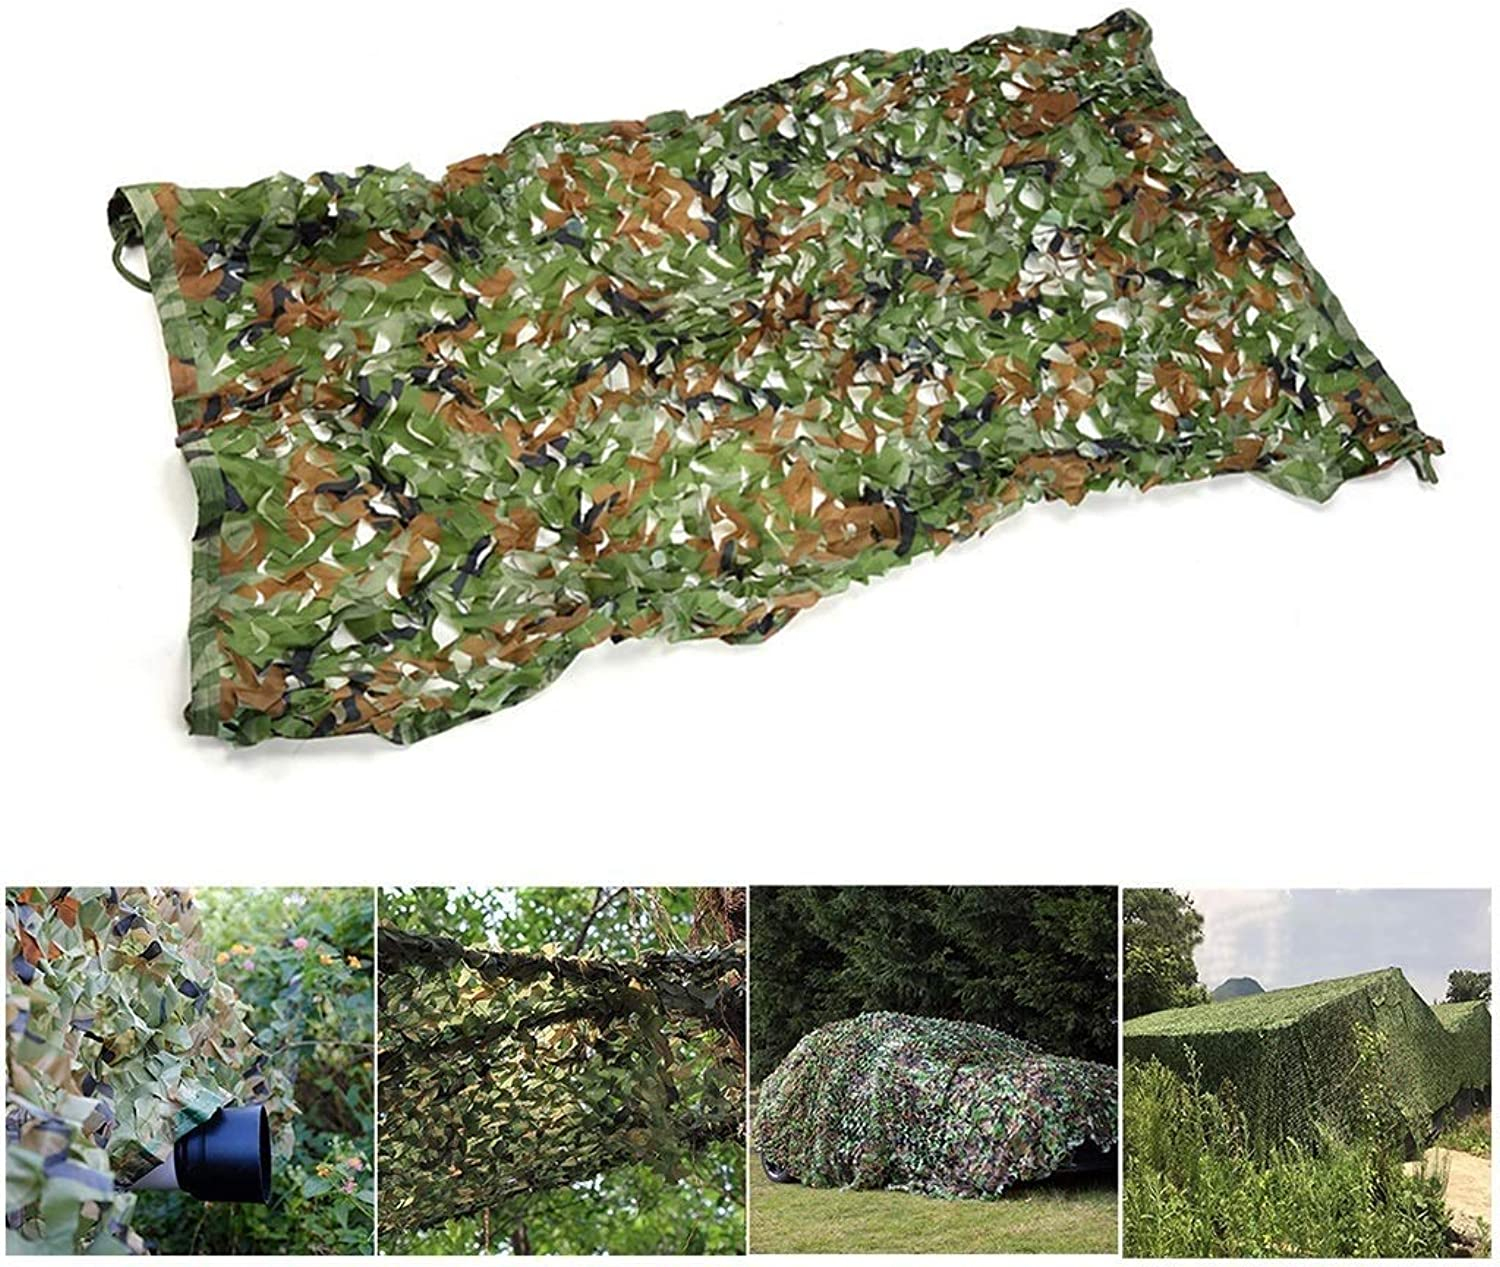 Camouflage net Camouflage Net, 4m×5m Lightweight Shade Net for Theme Party Decoration Car Cover Outdoor Hunting Camping (MultiSize Optional)